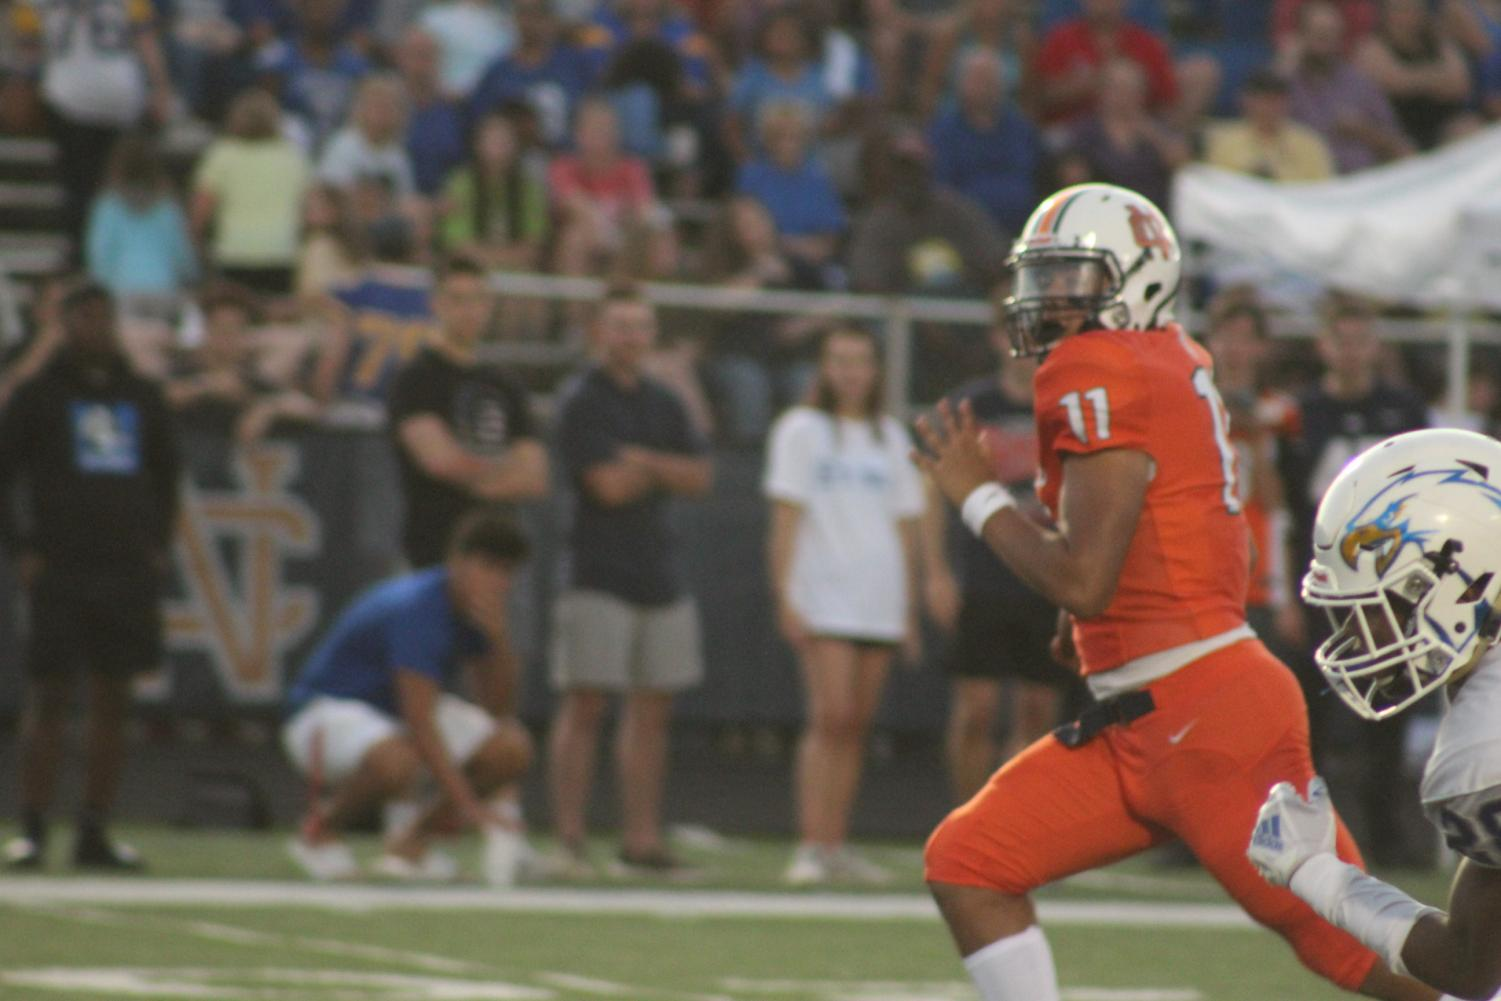 """After receiving the starting quarterback position over junior quarterback Trevor Lovett for the second week in a row, freshman phenom Malachi Singleton (pictured above) faced trouble in his second career start. Though posting over 100 yards of total offense, Singleton did not find the endzone friendly, unlike a week prior where he scored 4 touchdowns. """"Malachi did well for only his second game. Colquitt County is just an unreal team,"""" sophomore linebacker Vernard Martin said."""